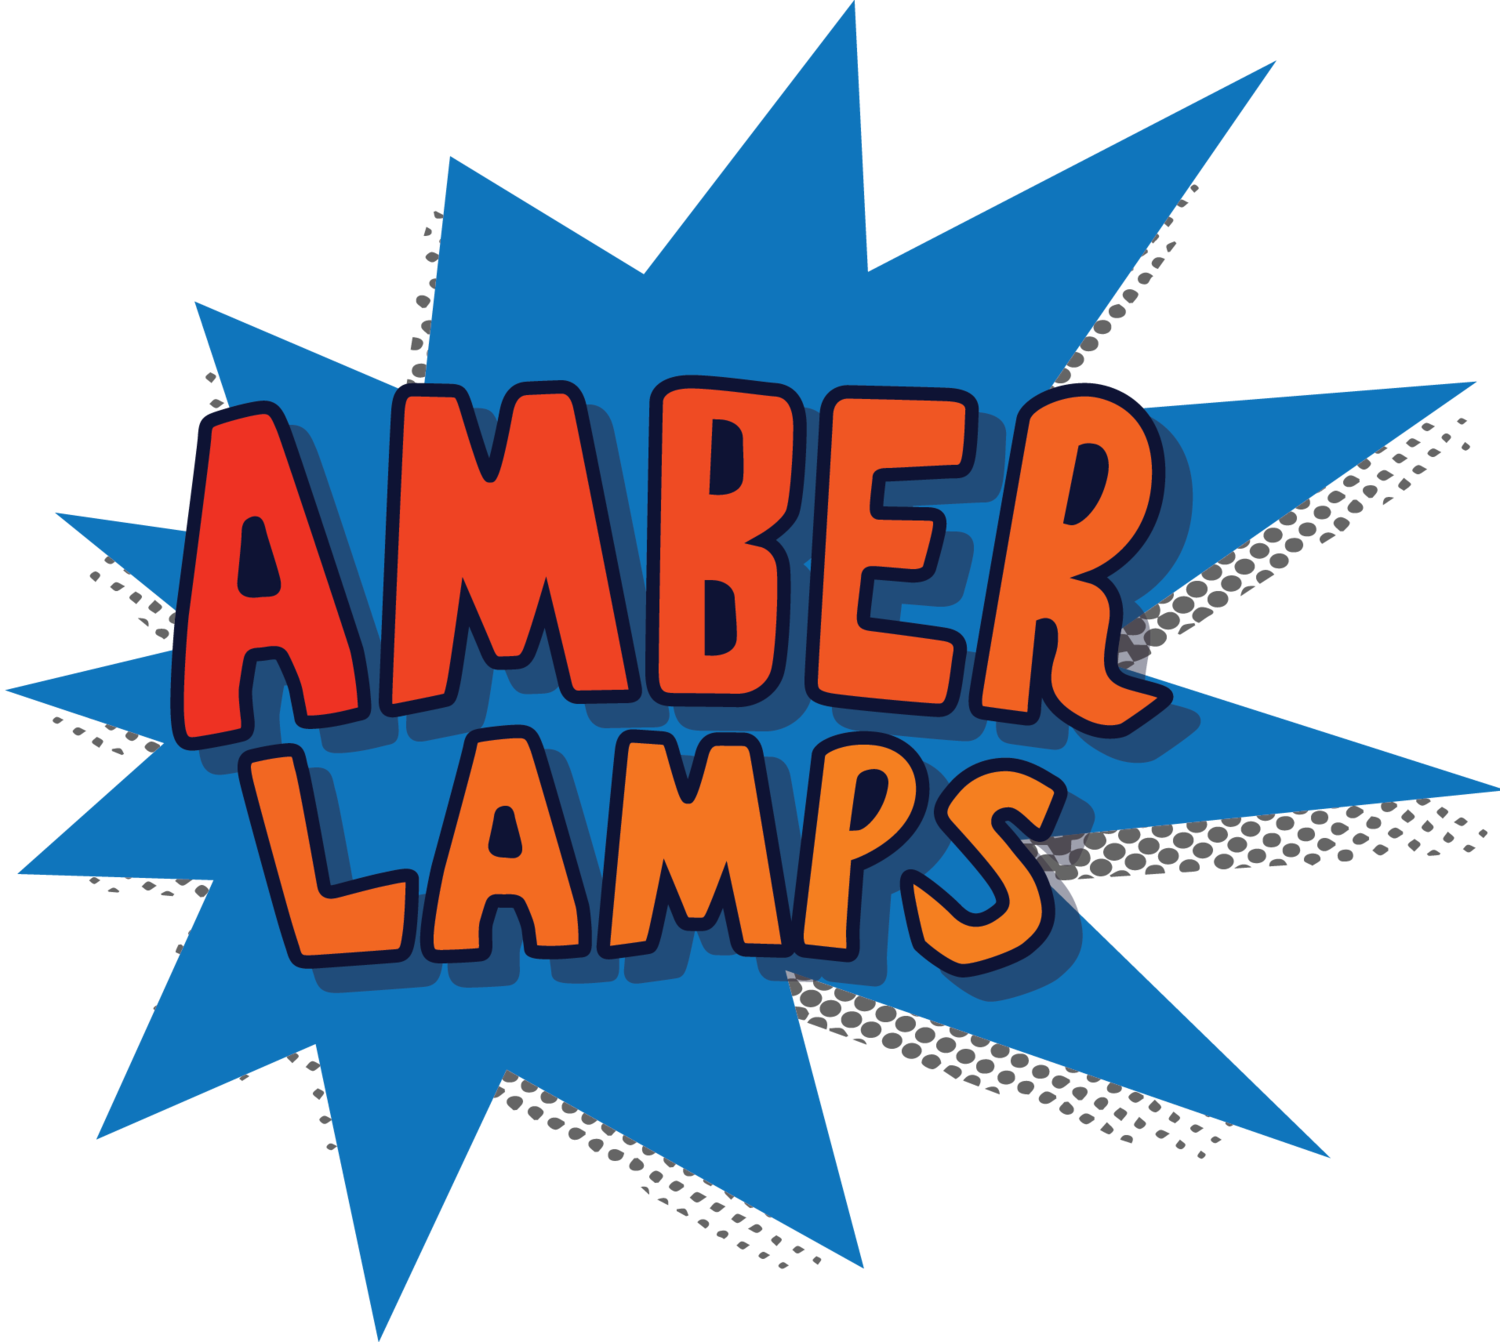 Amber Lamps - Astoria Punk